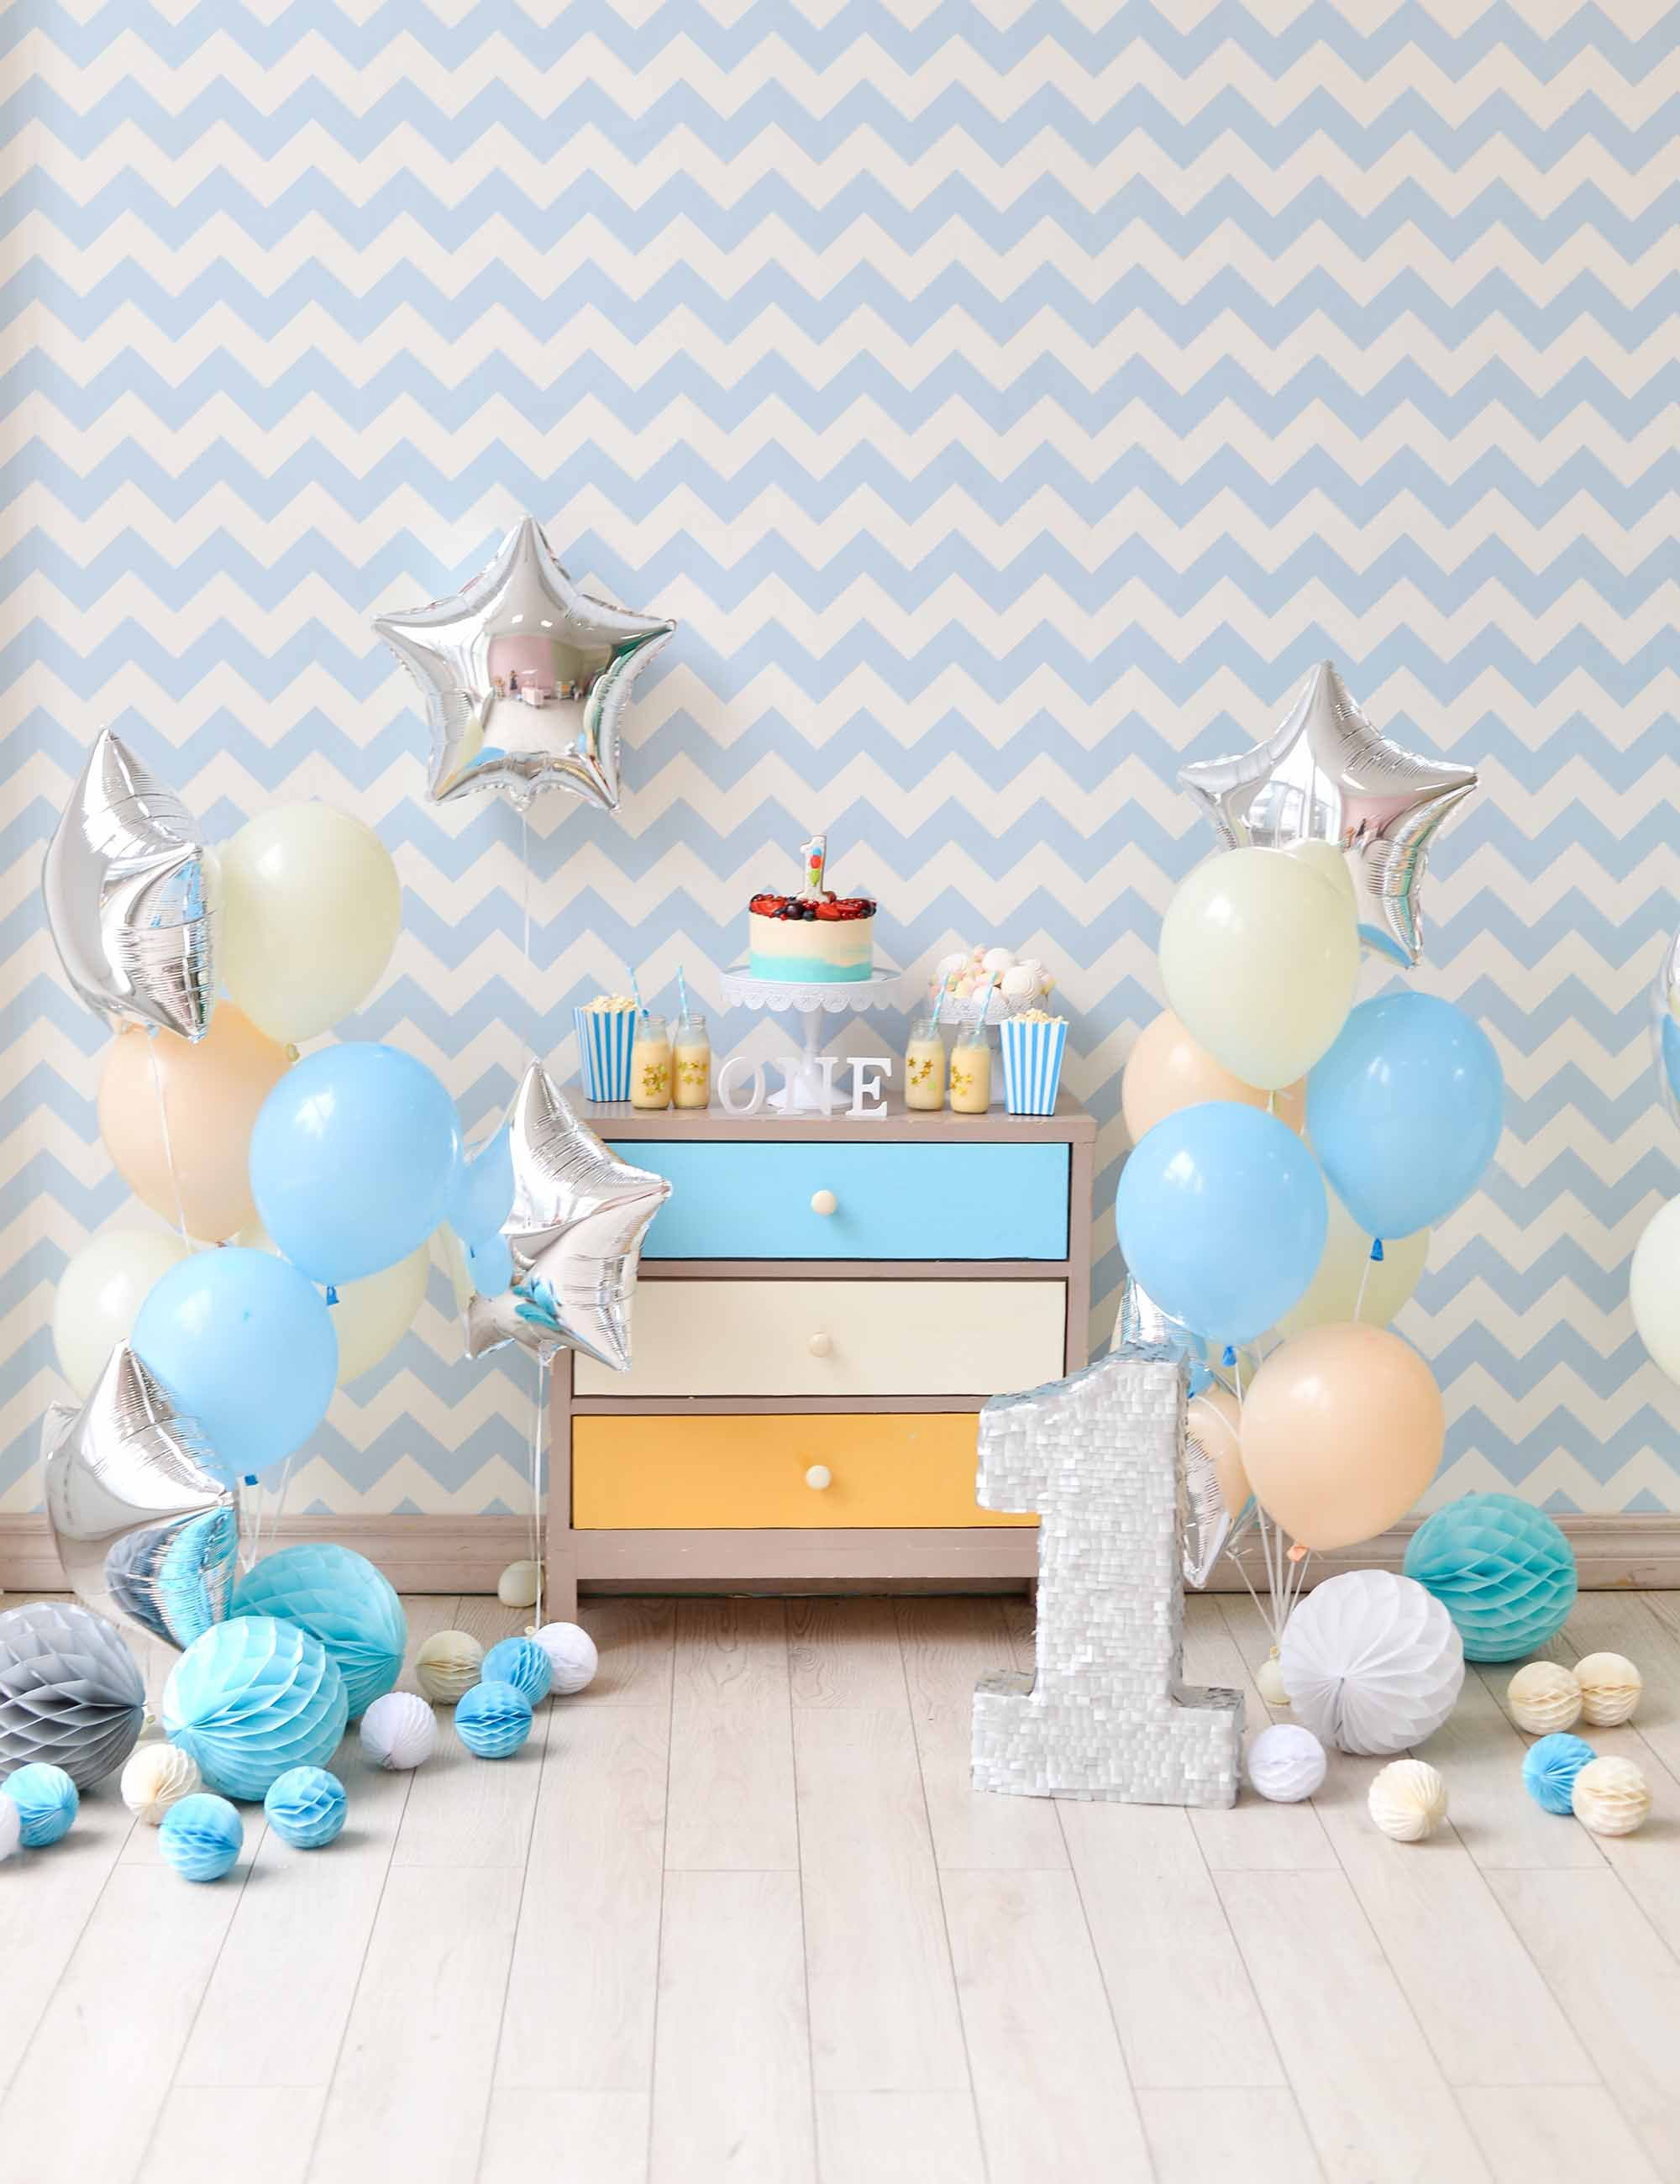 Beige And Blue Chevron banner Party Decoration Backdrop